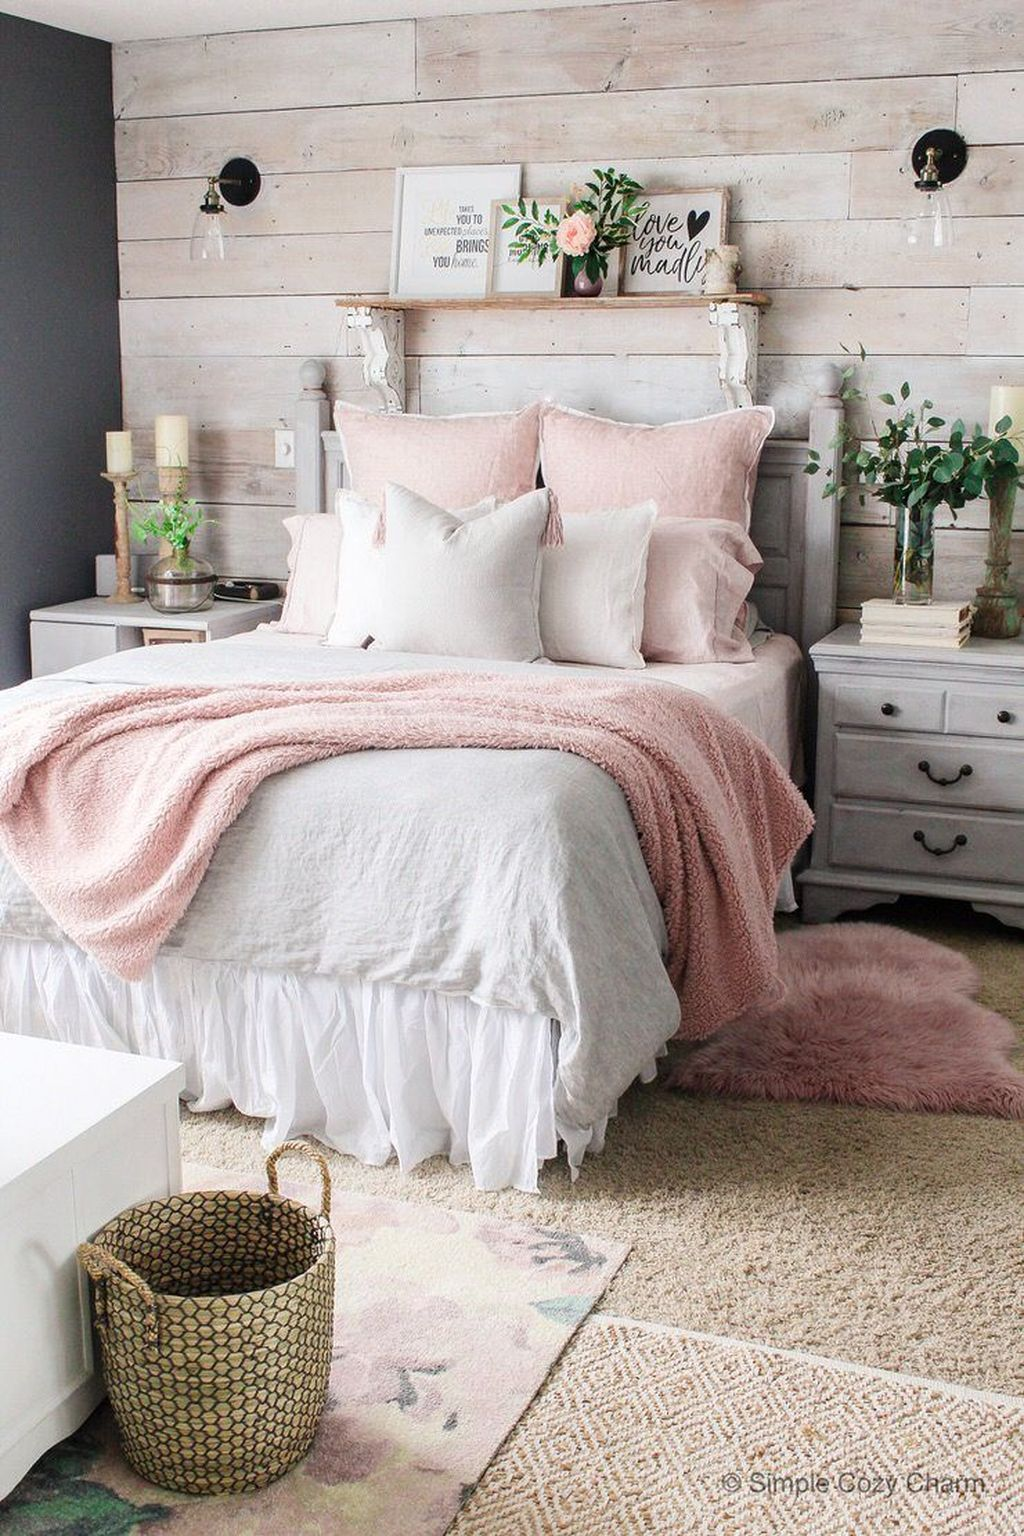 9 Inspiring DIY Bedroom Decor Ideas You Can Try in 9 | Bedroom ...